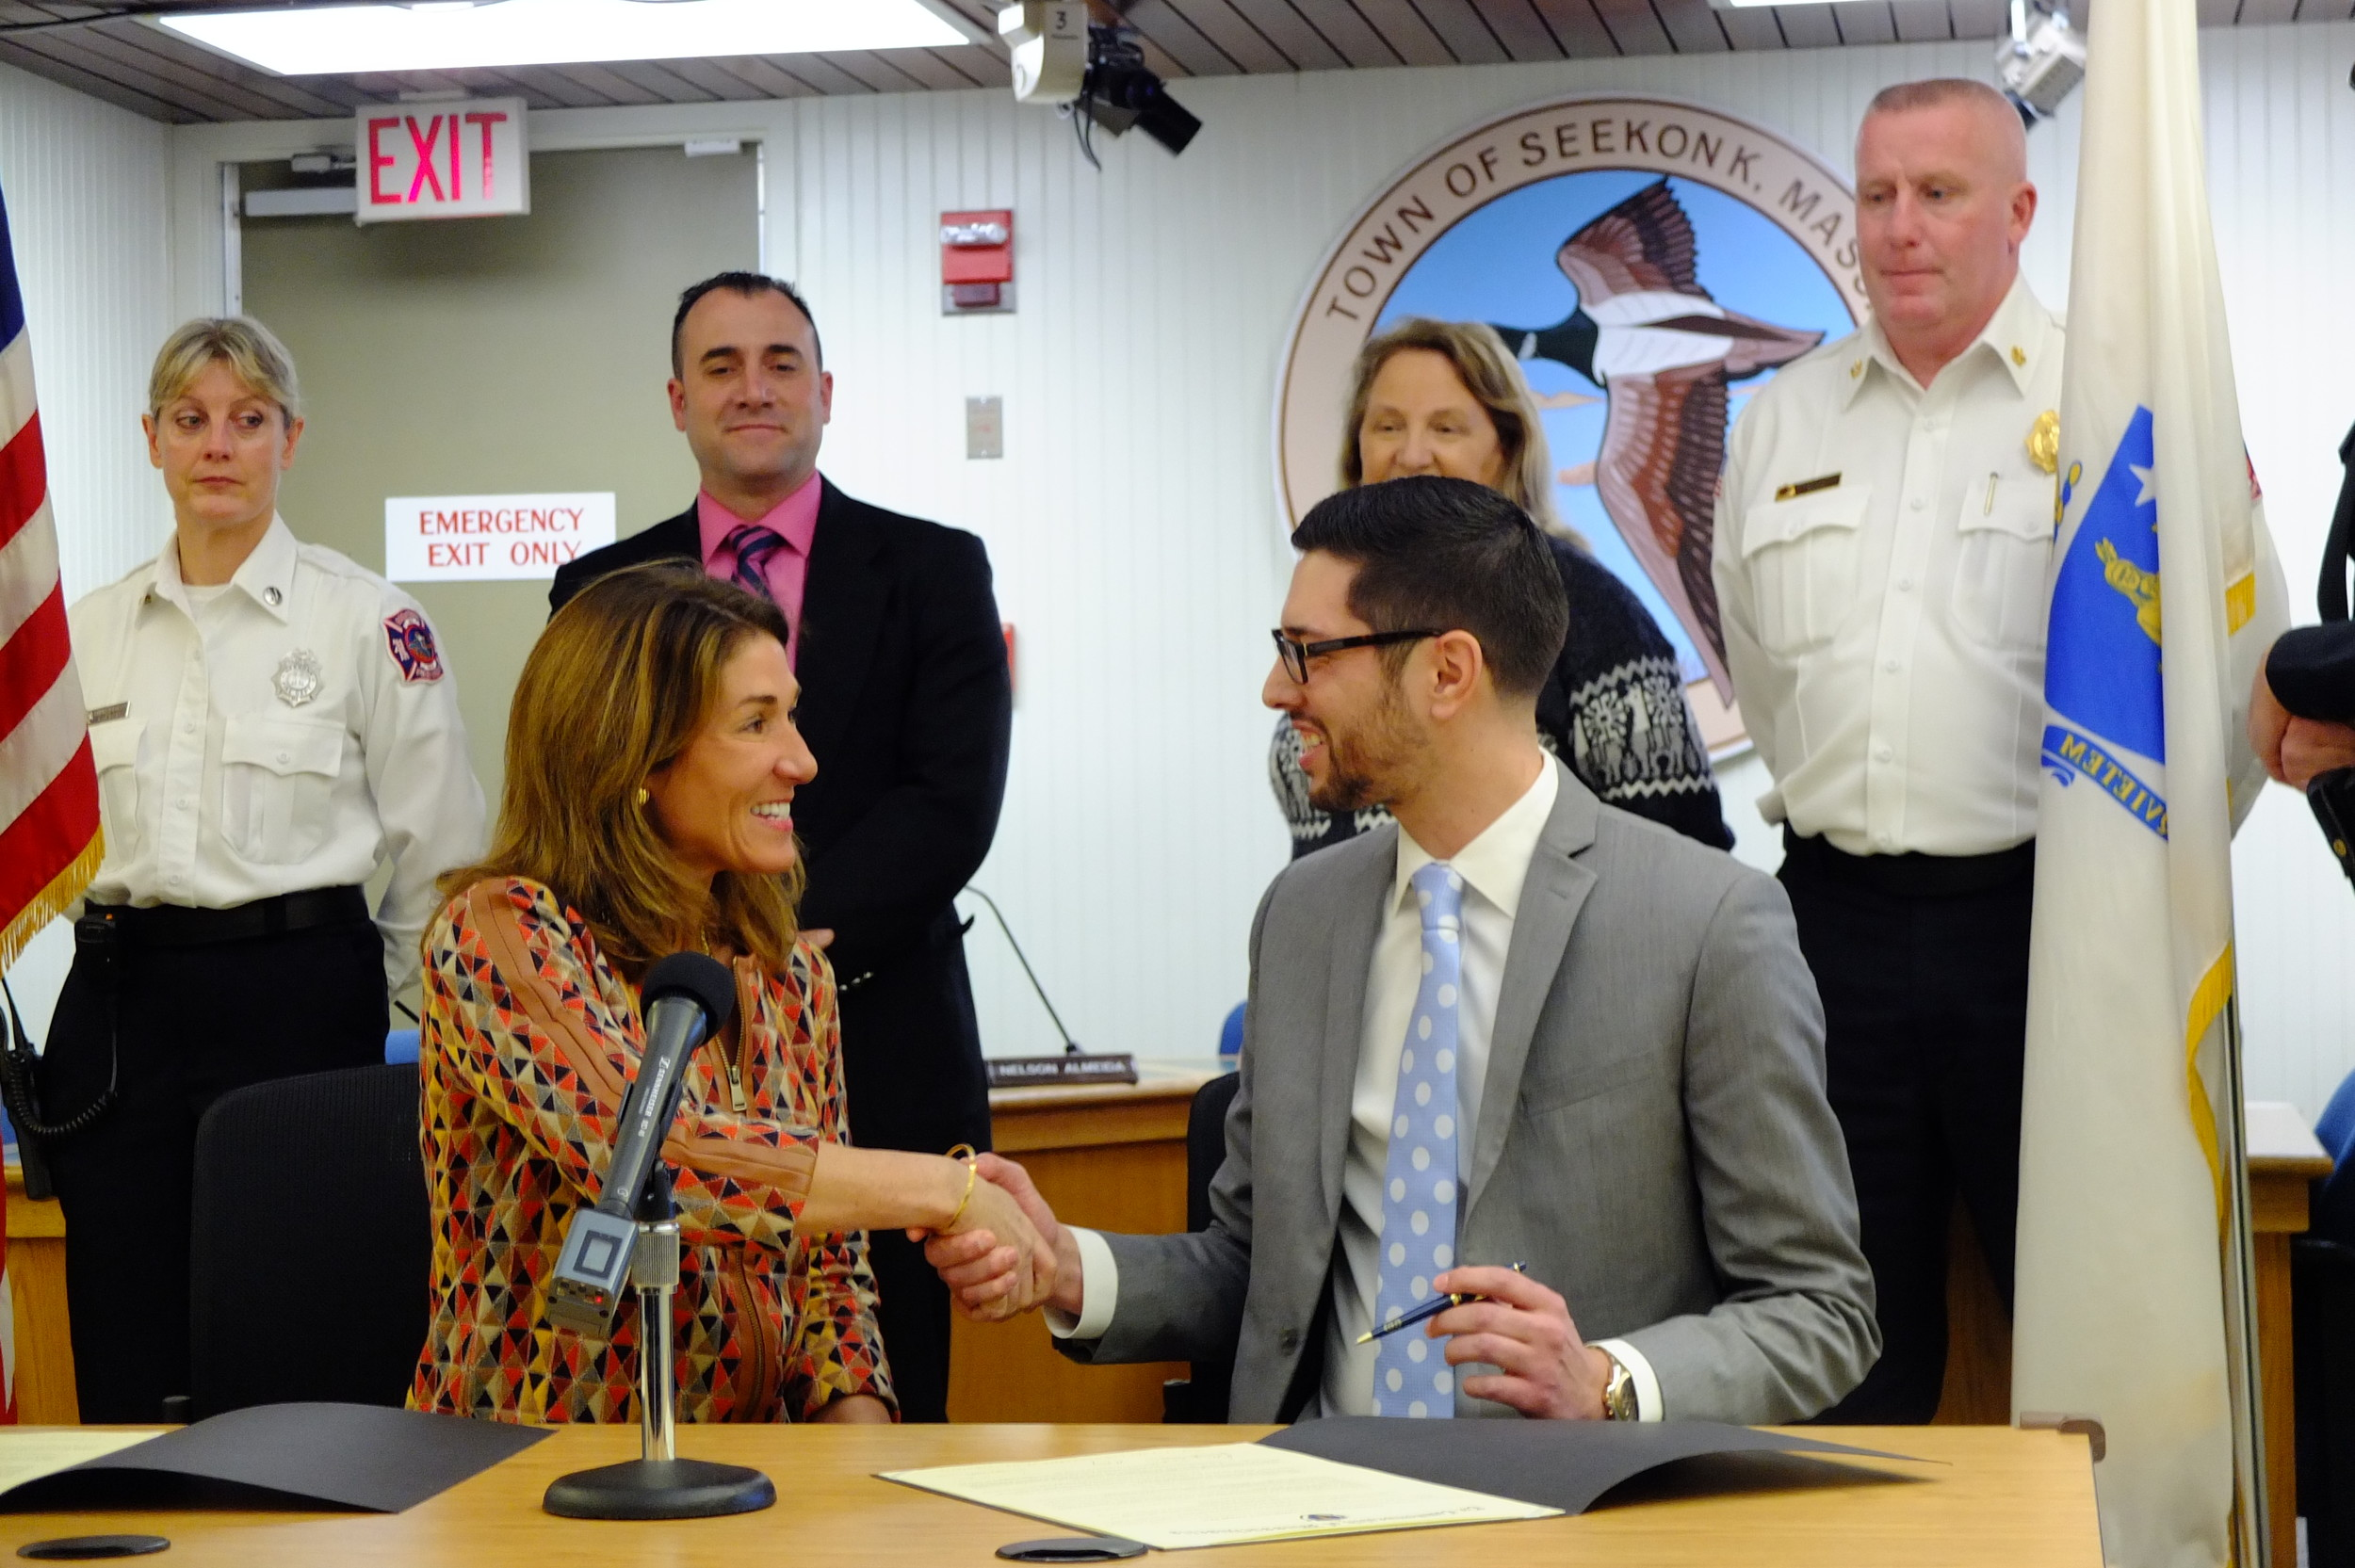 Rehoboth Signs Community Compact: Seekonk Town Administrator Shawn Cadime shakes hands with Lt. Governor Karyn Polito after signing the Community Compact.  Standing behind them are (L to R) Seekonk FIre Capt. Sandra Miller, Seekonk Selectman Nelson Almeida, Seekonk Selectwoman Michelle Hines, and Seekonk Fire Chief Michael Healy.